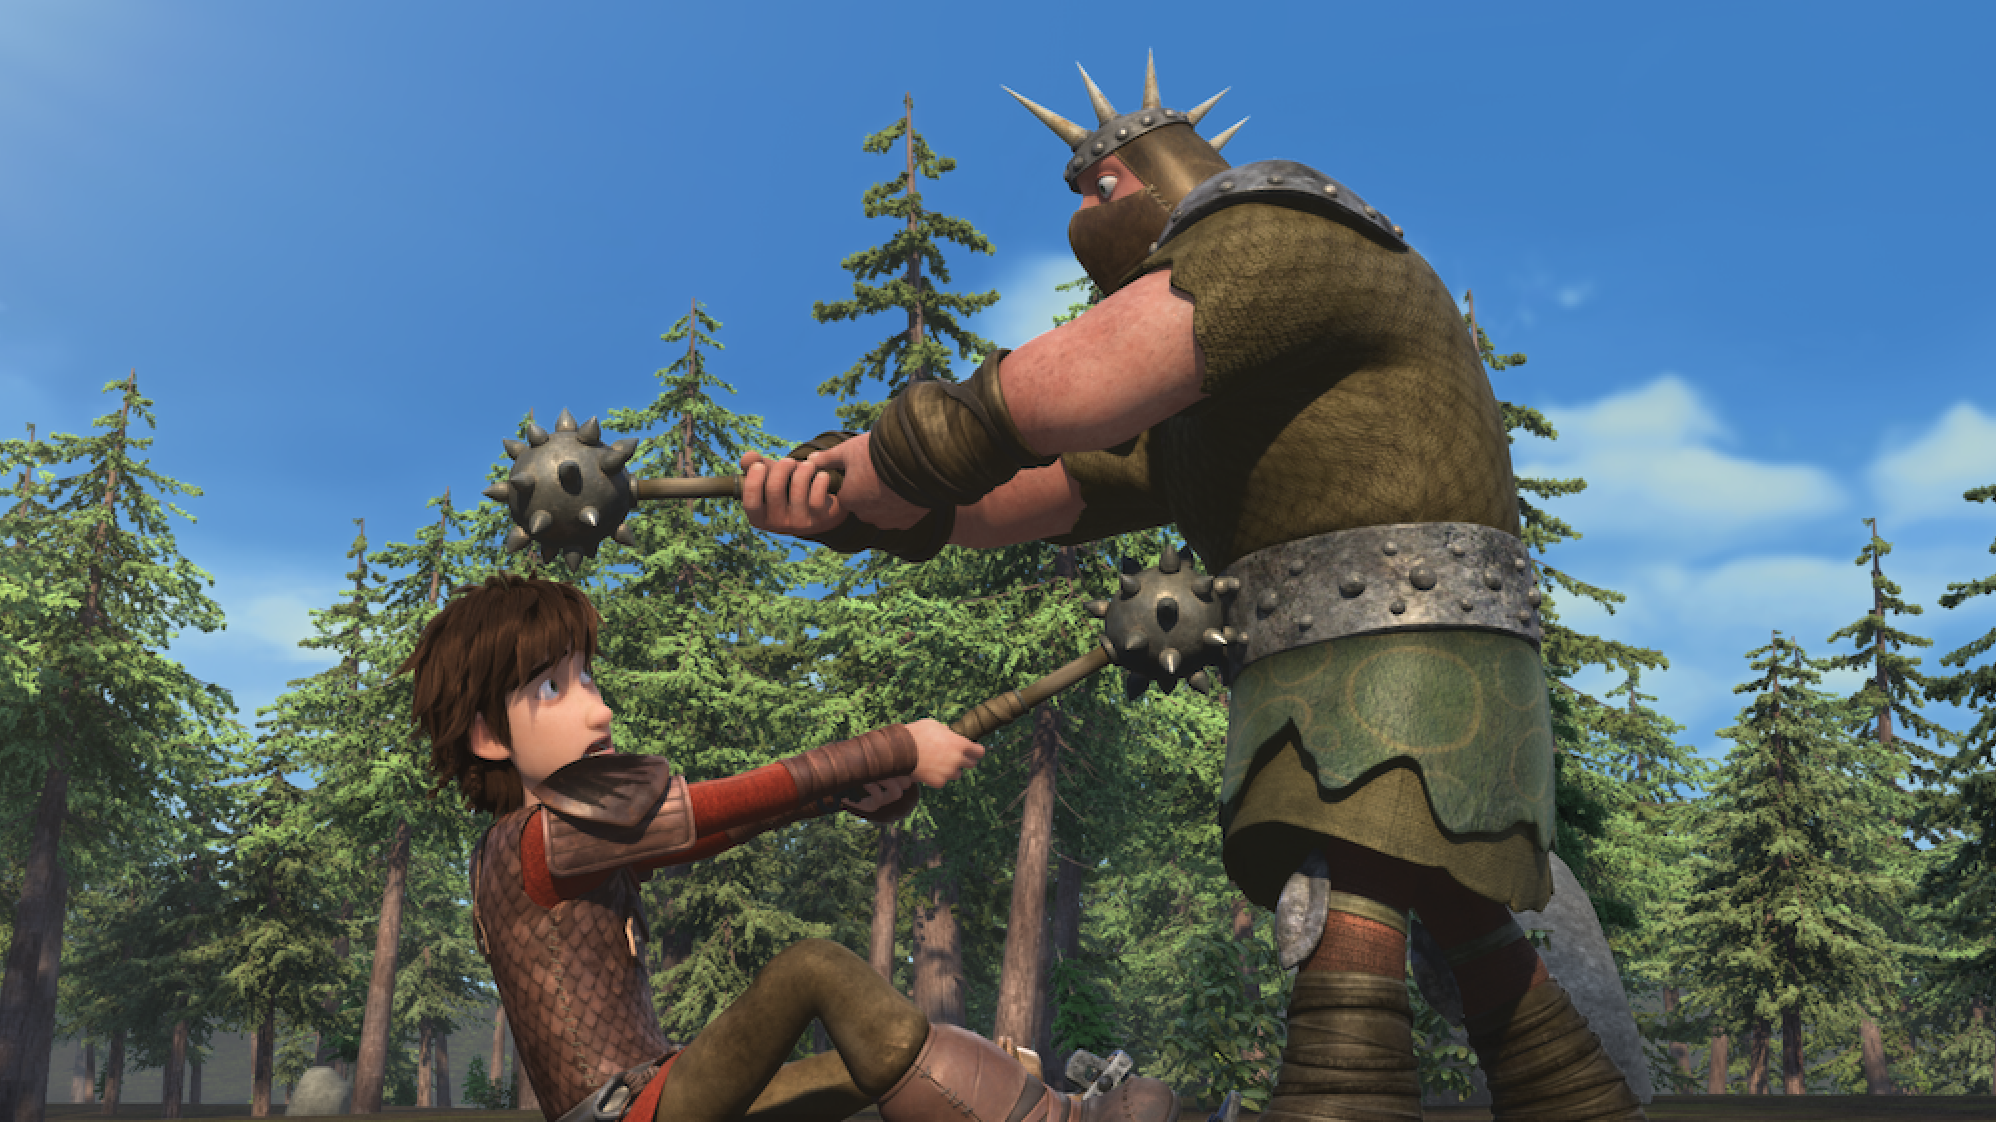 How to train your dragon review netflix tv show is not just for dragons race to the edge netflix season 3 how to train your dragon ccuart Gallery